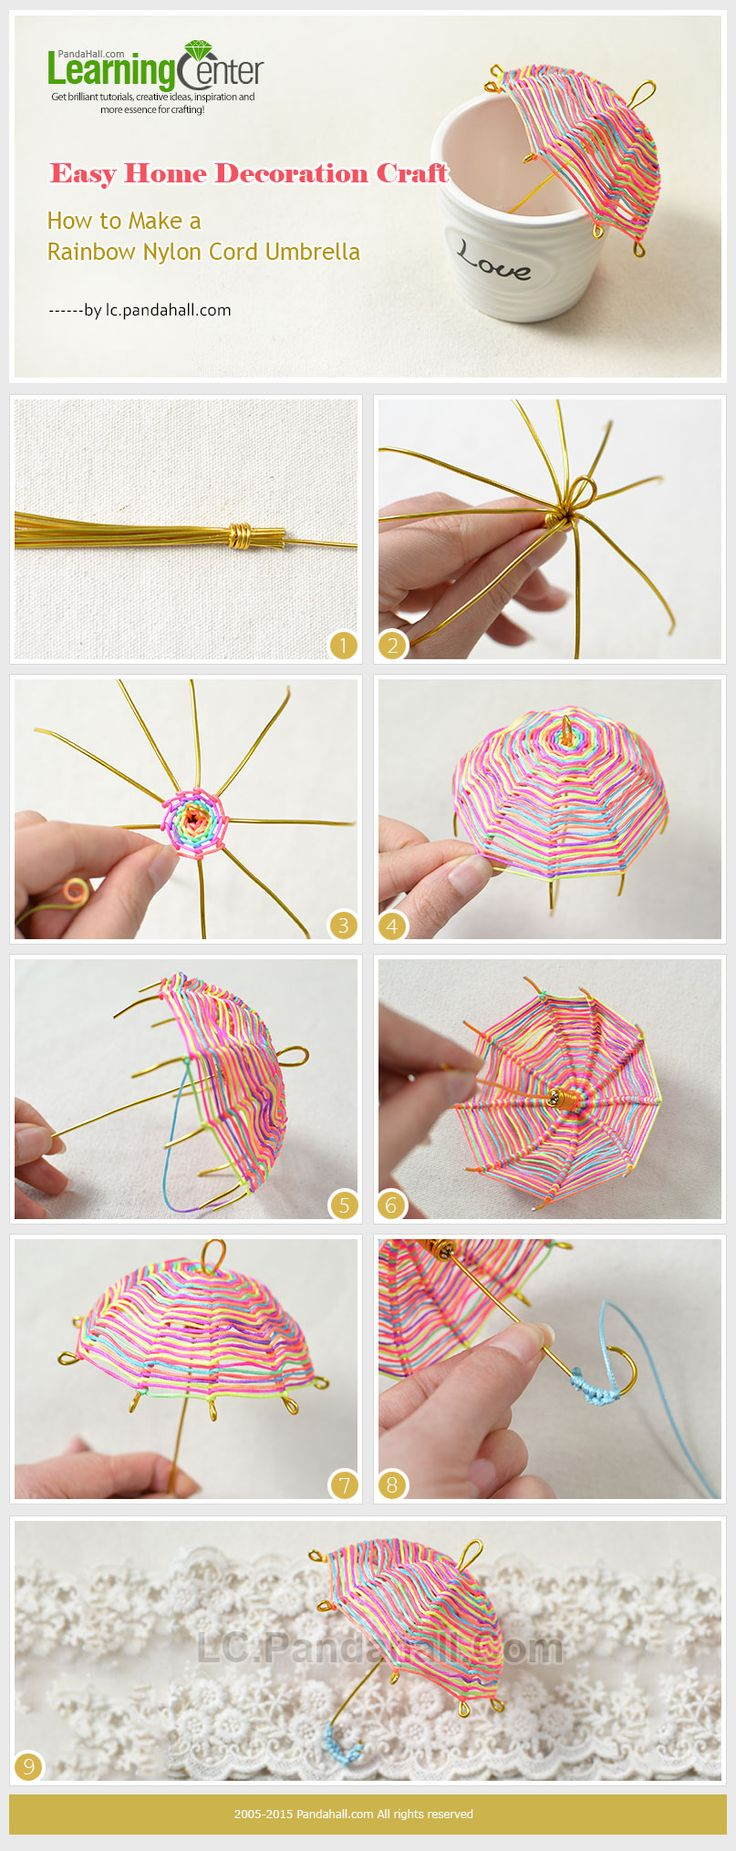 57 best pooja decor images on pinterest diwali decorations how to make a rainbow nylon cord umbrella